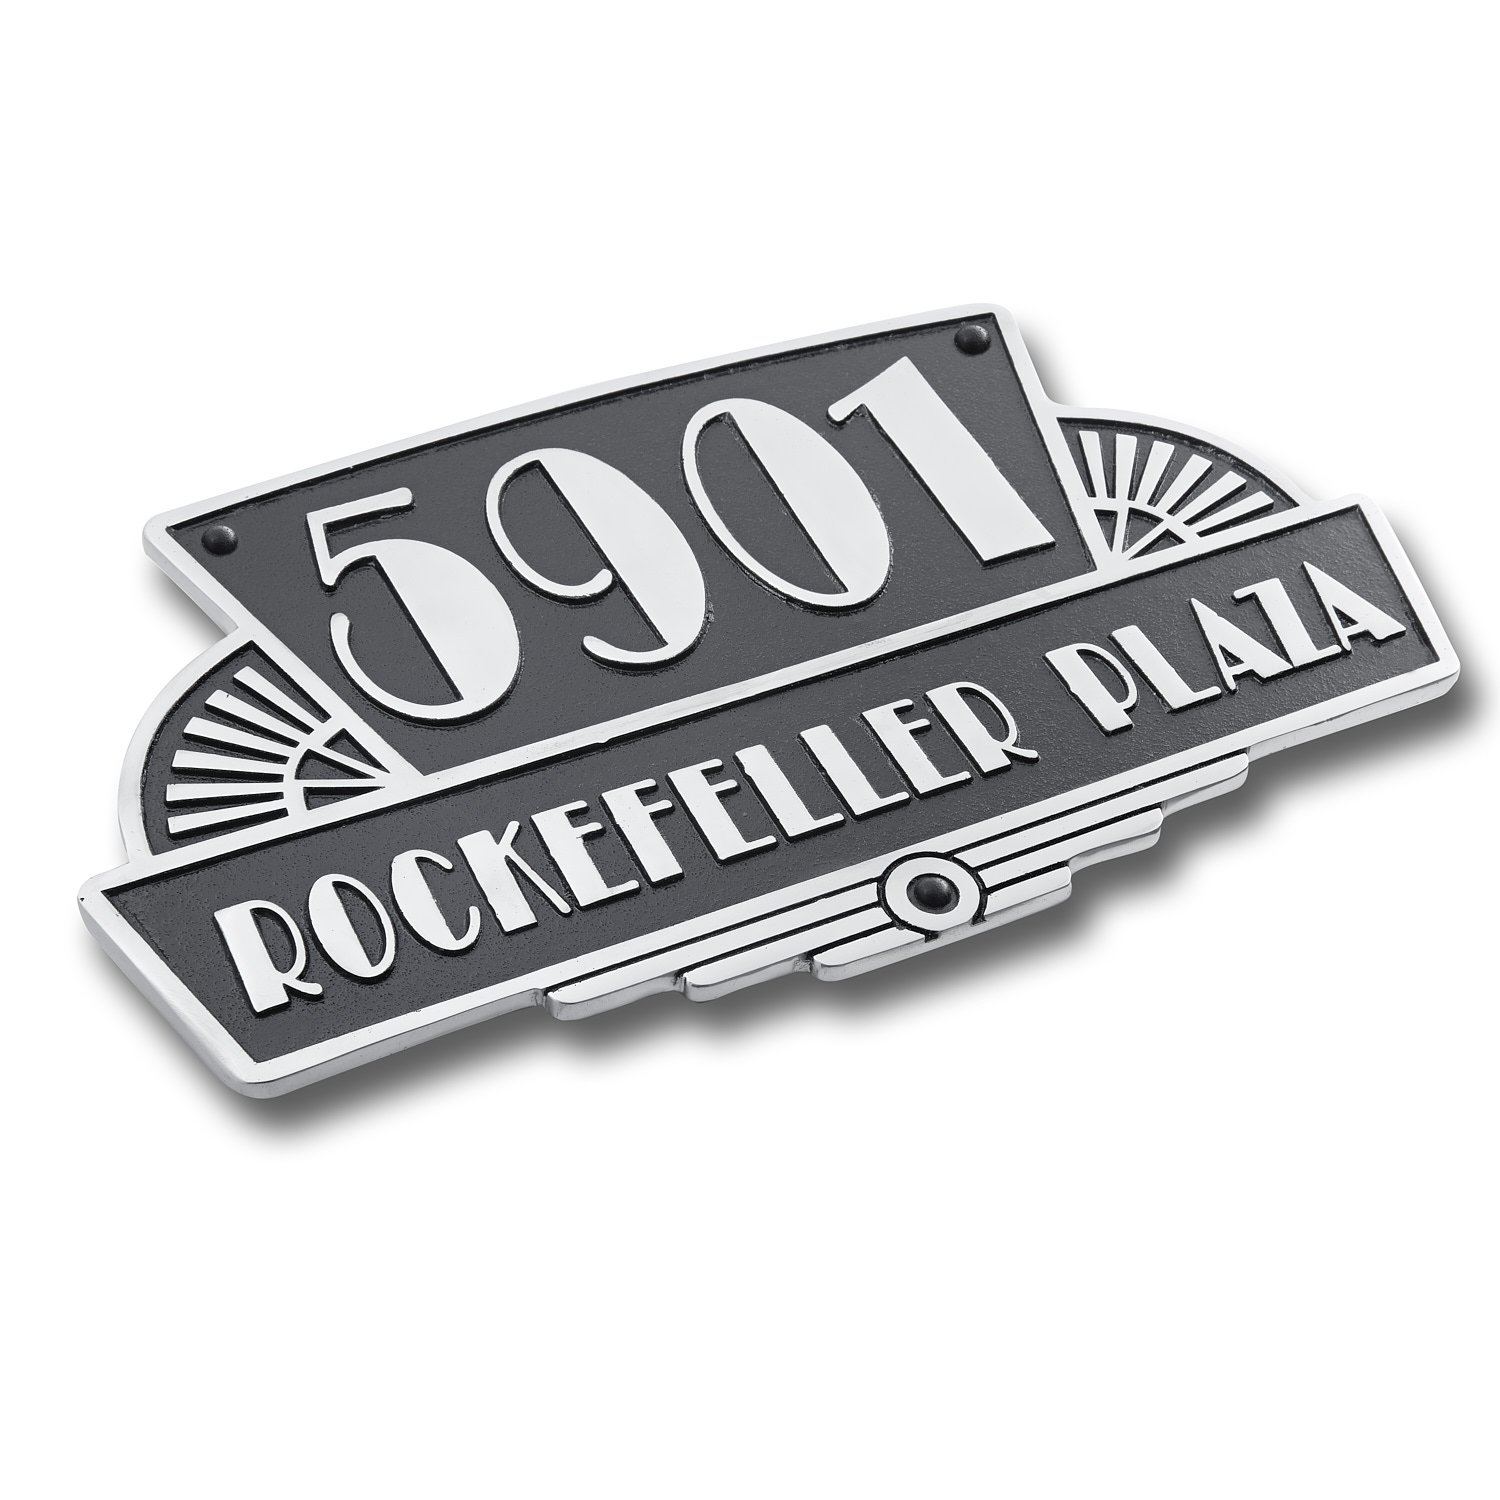 House Number Address Plaque Art Deco Rockefeller Style. Cast Metal Personalised Yard Or Mailbox Sign With Oodles Of Number And Letter Options. Handmade In England By The Metal Foundry Just For You